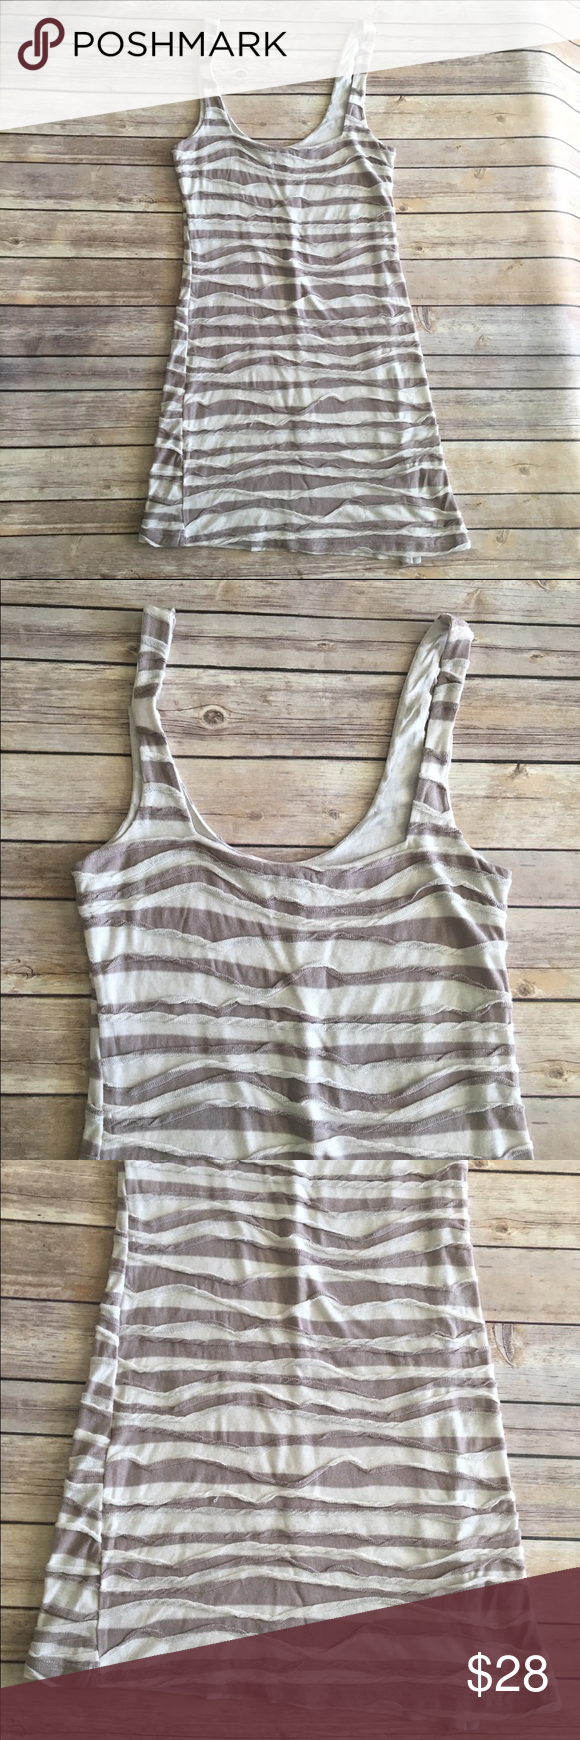 Free people gray and cream body con dress Gray and cream textured stripe dress by Free People. Good condition. Measures about 32 inches around the bust, about 29 inches around the waist and is about 34 inches long. Free People Dresses